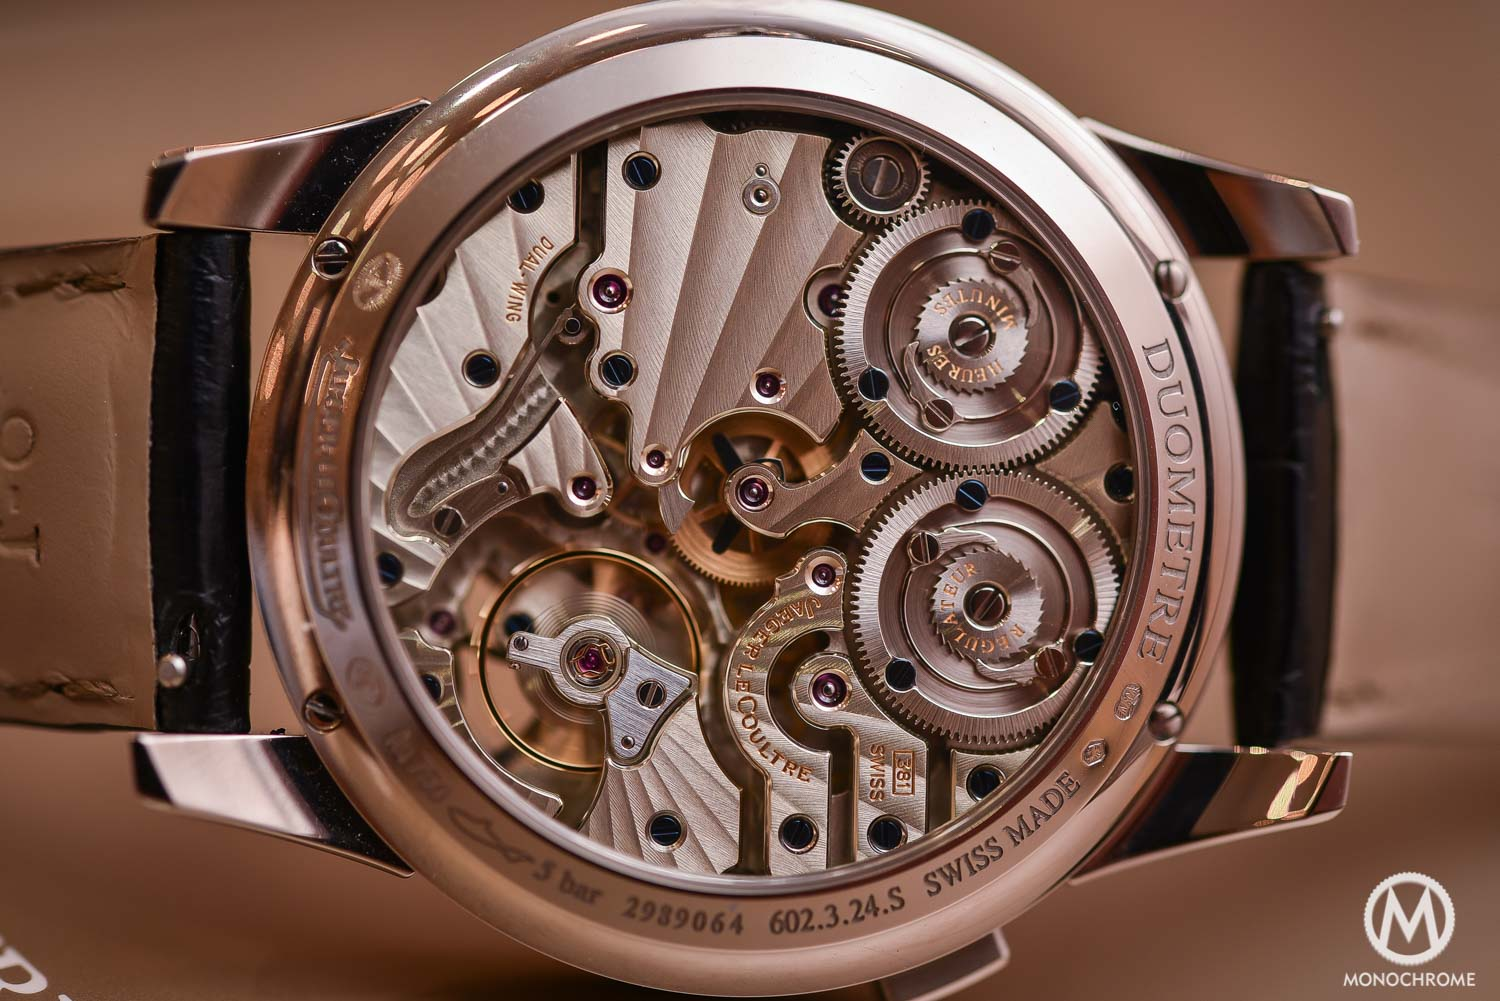 Jaeger-LeCoultre Duometre Quantieme Lunaire in white gold and opened dial - 4